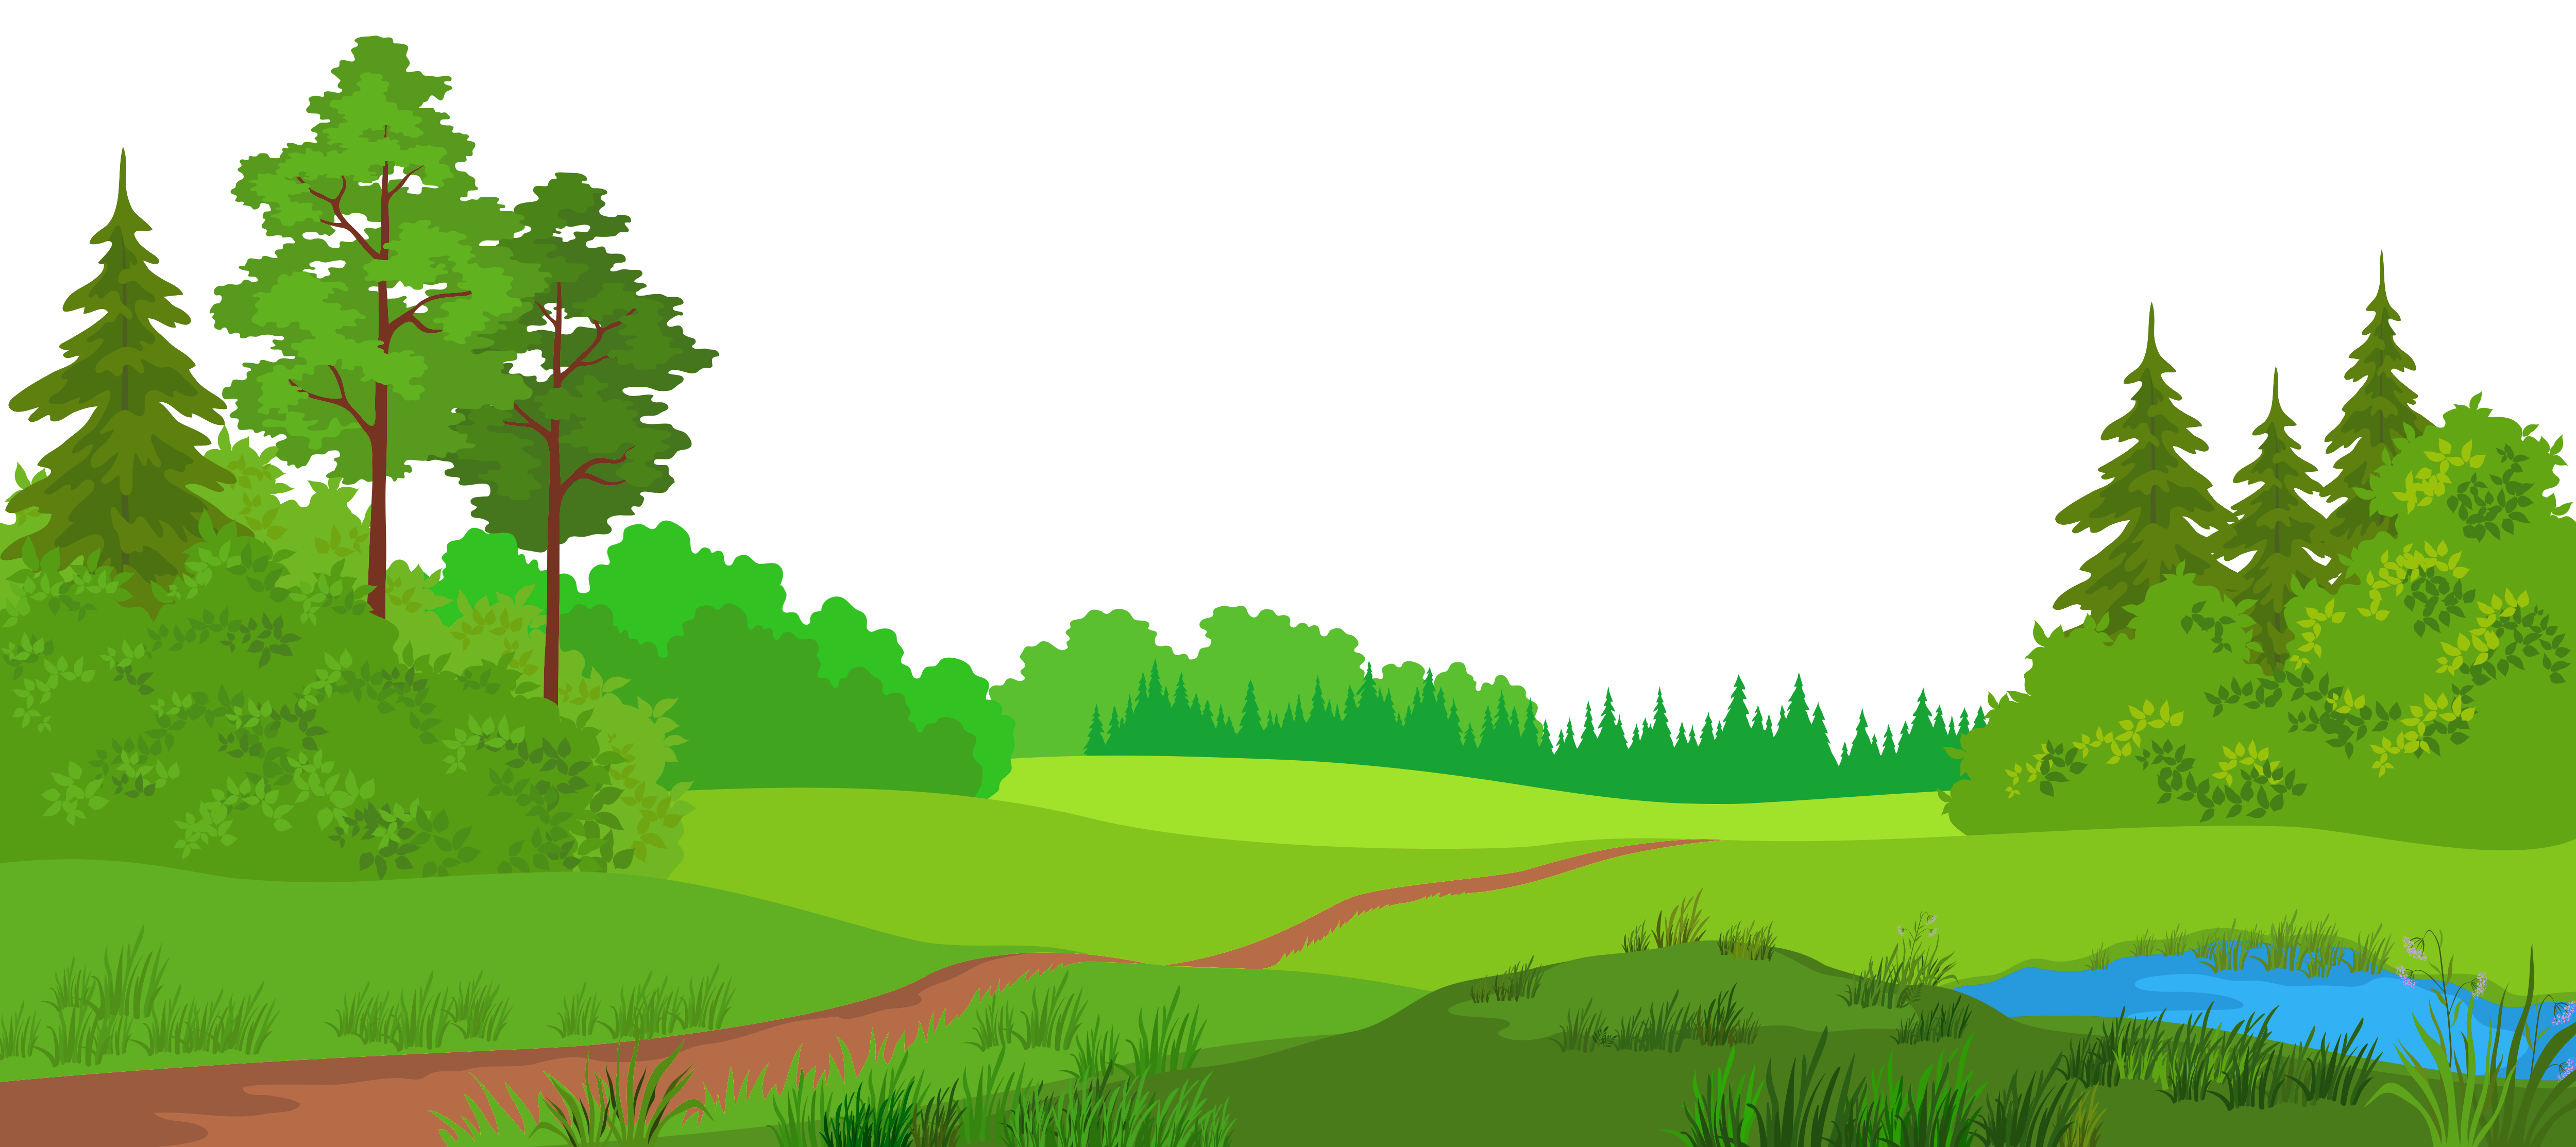 Sunny clipart meadow. Ecosystem project on emaze